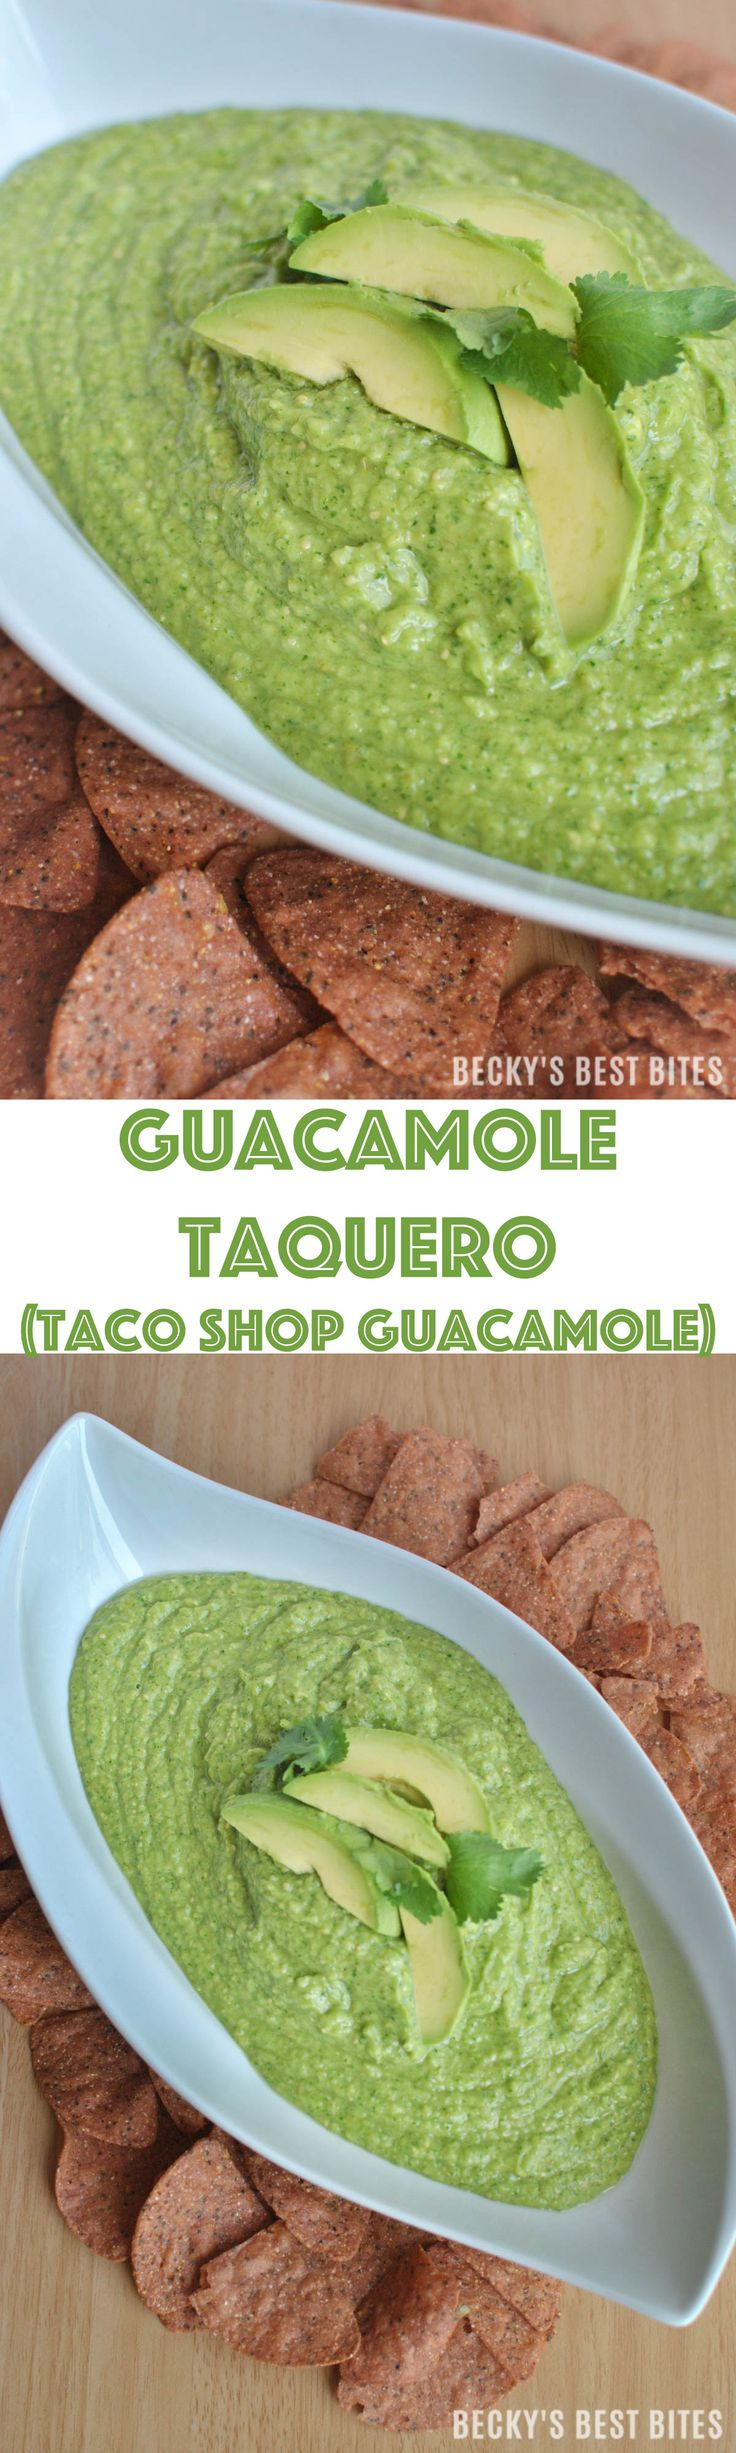 Whether your backyard barbequing, taking it to the beach, or camping in the great outdoors, this Guacamole Taquero brings the heat to your summer eats with Mezzetta's Deli-Sliced Hot Jalapenos by Becky's Best Bites #bringtheheat #sp